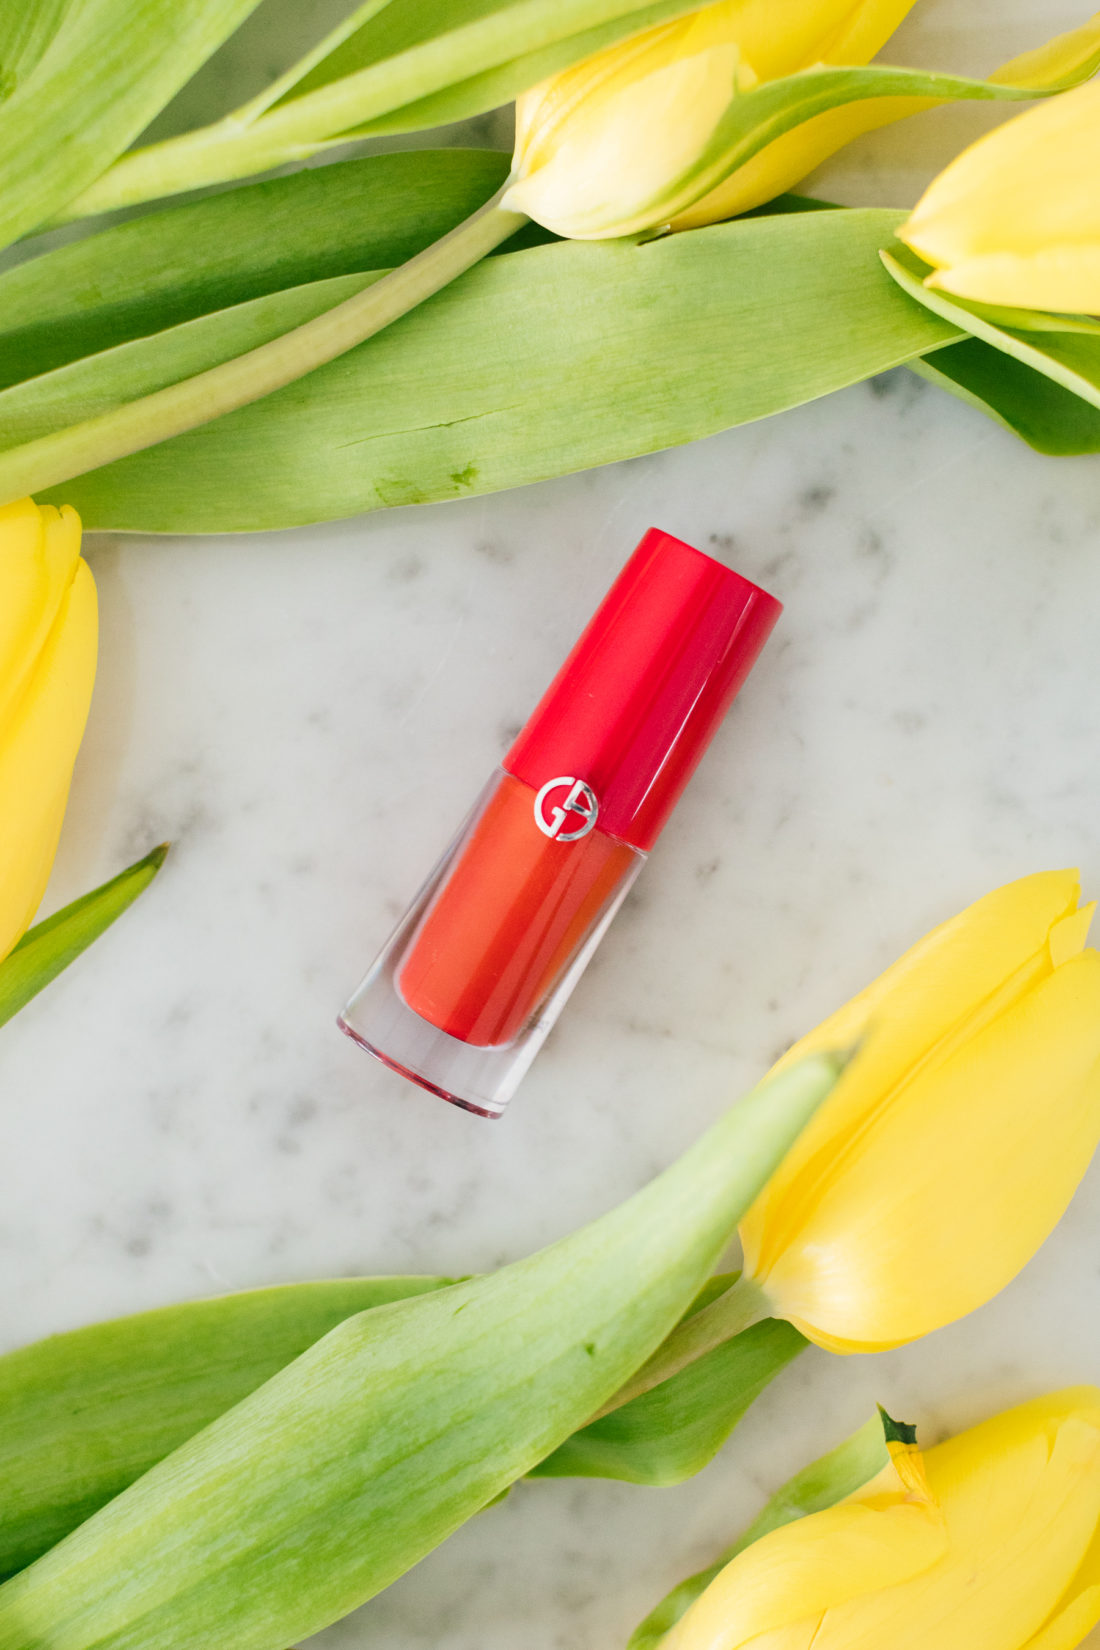 Eva Amurri Martino includes Armani Beauty Lip Magnet as part of her monthly obsessions roundup